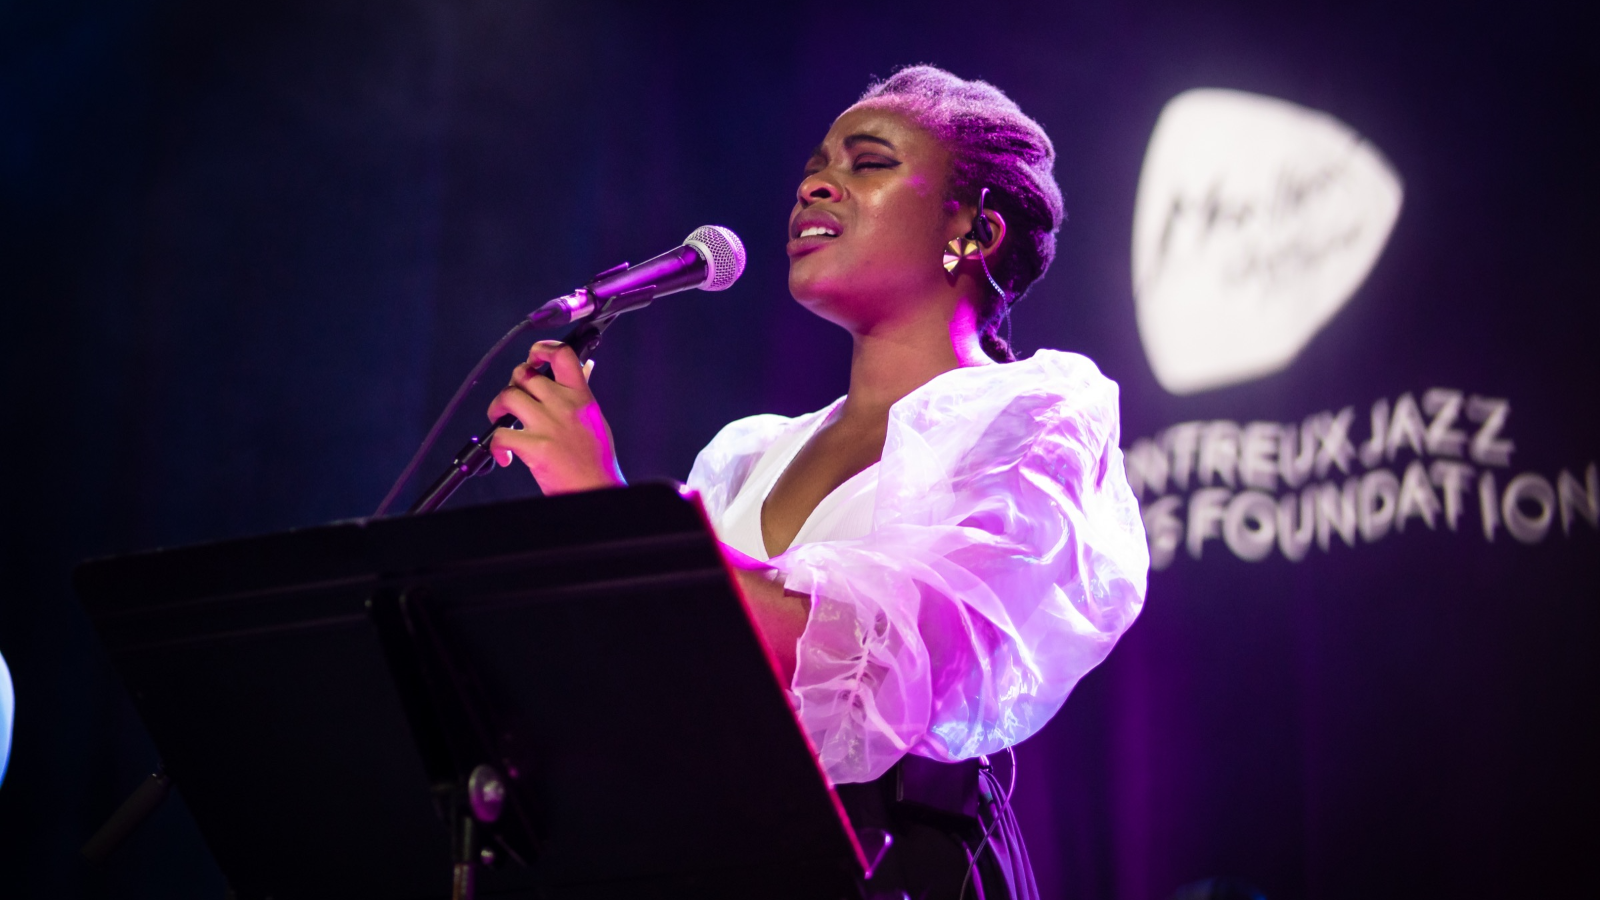 Shure & Montreux Jazz Artists Foundation Showcase 'Autumn of Music'